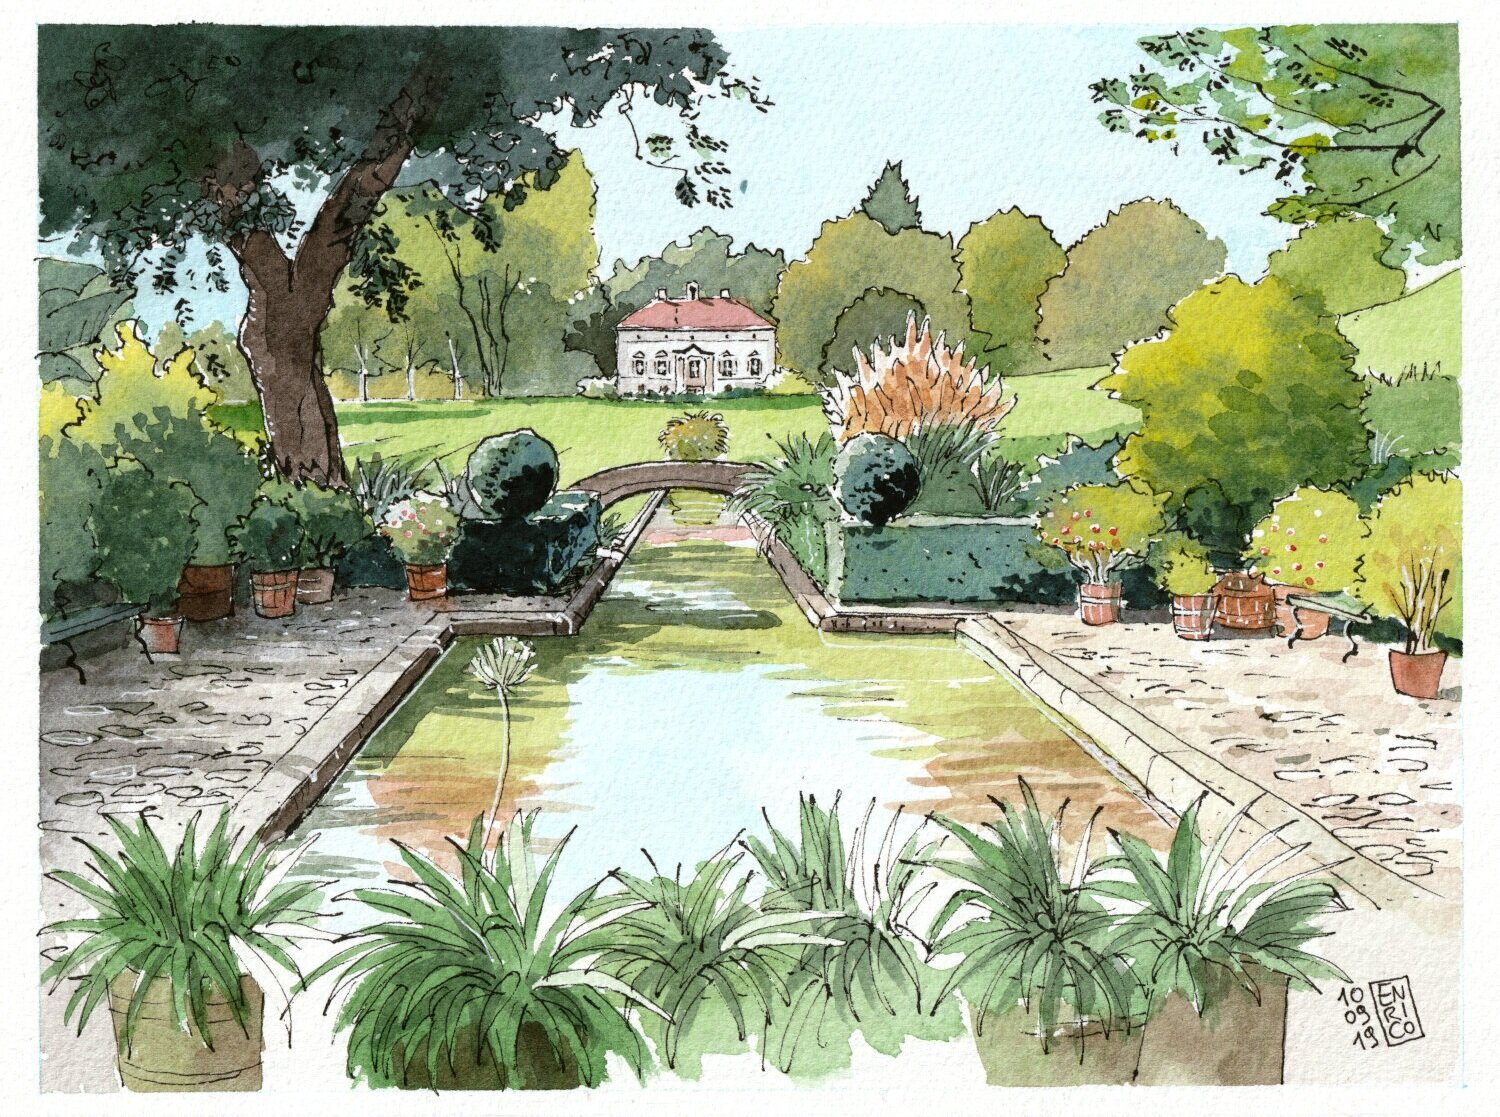 I love Merian Garden, especially in sunny mornings, when there is nobody around but the gardeners.